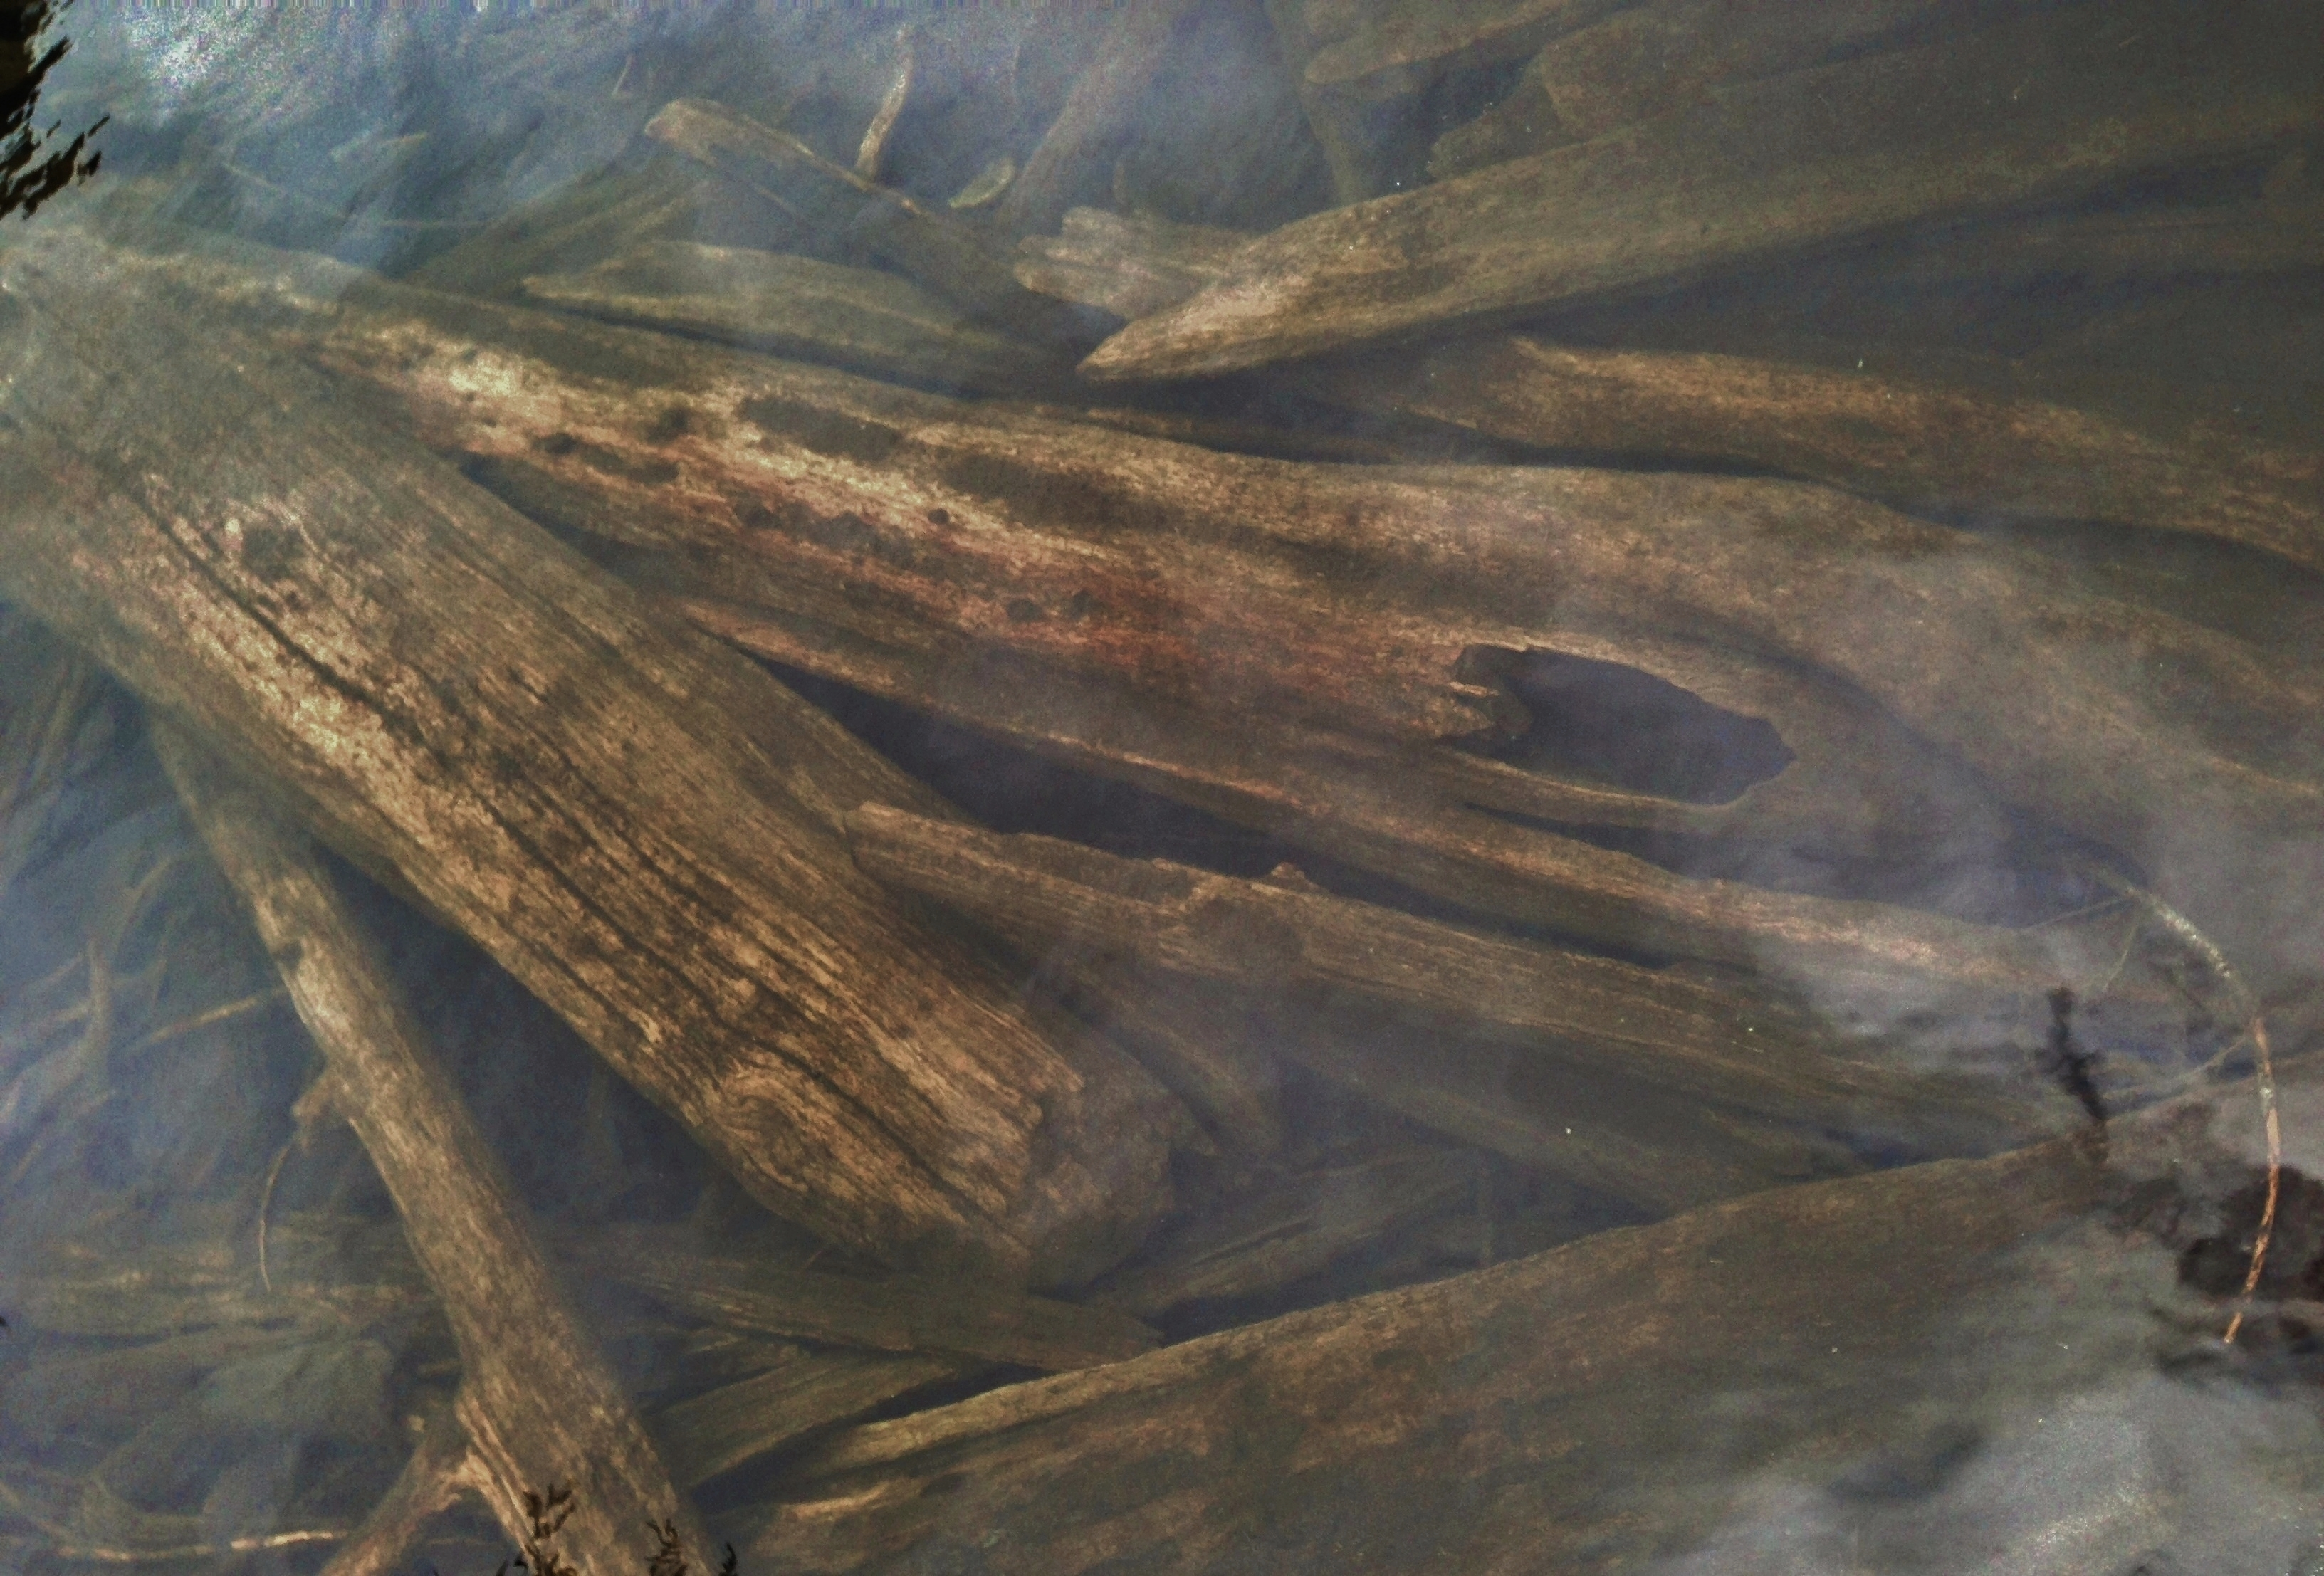 Drowned logs repose beneath the surface at the lake's outlet to Talapus Creek. Talapus Lake, June 09, 2013.